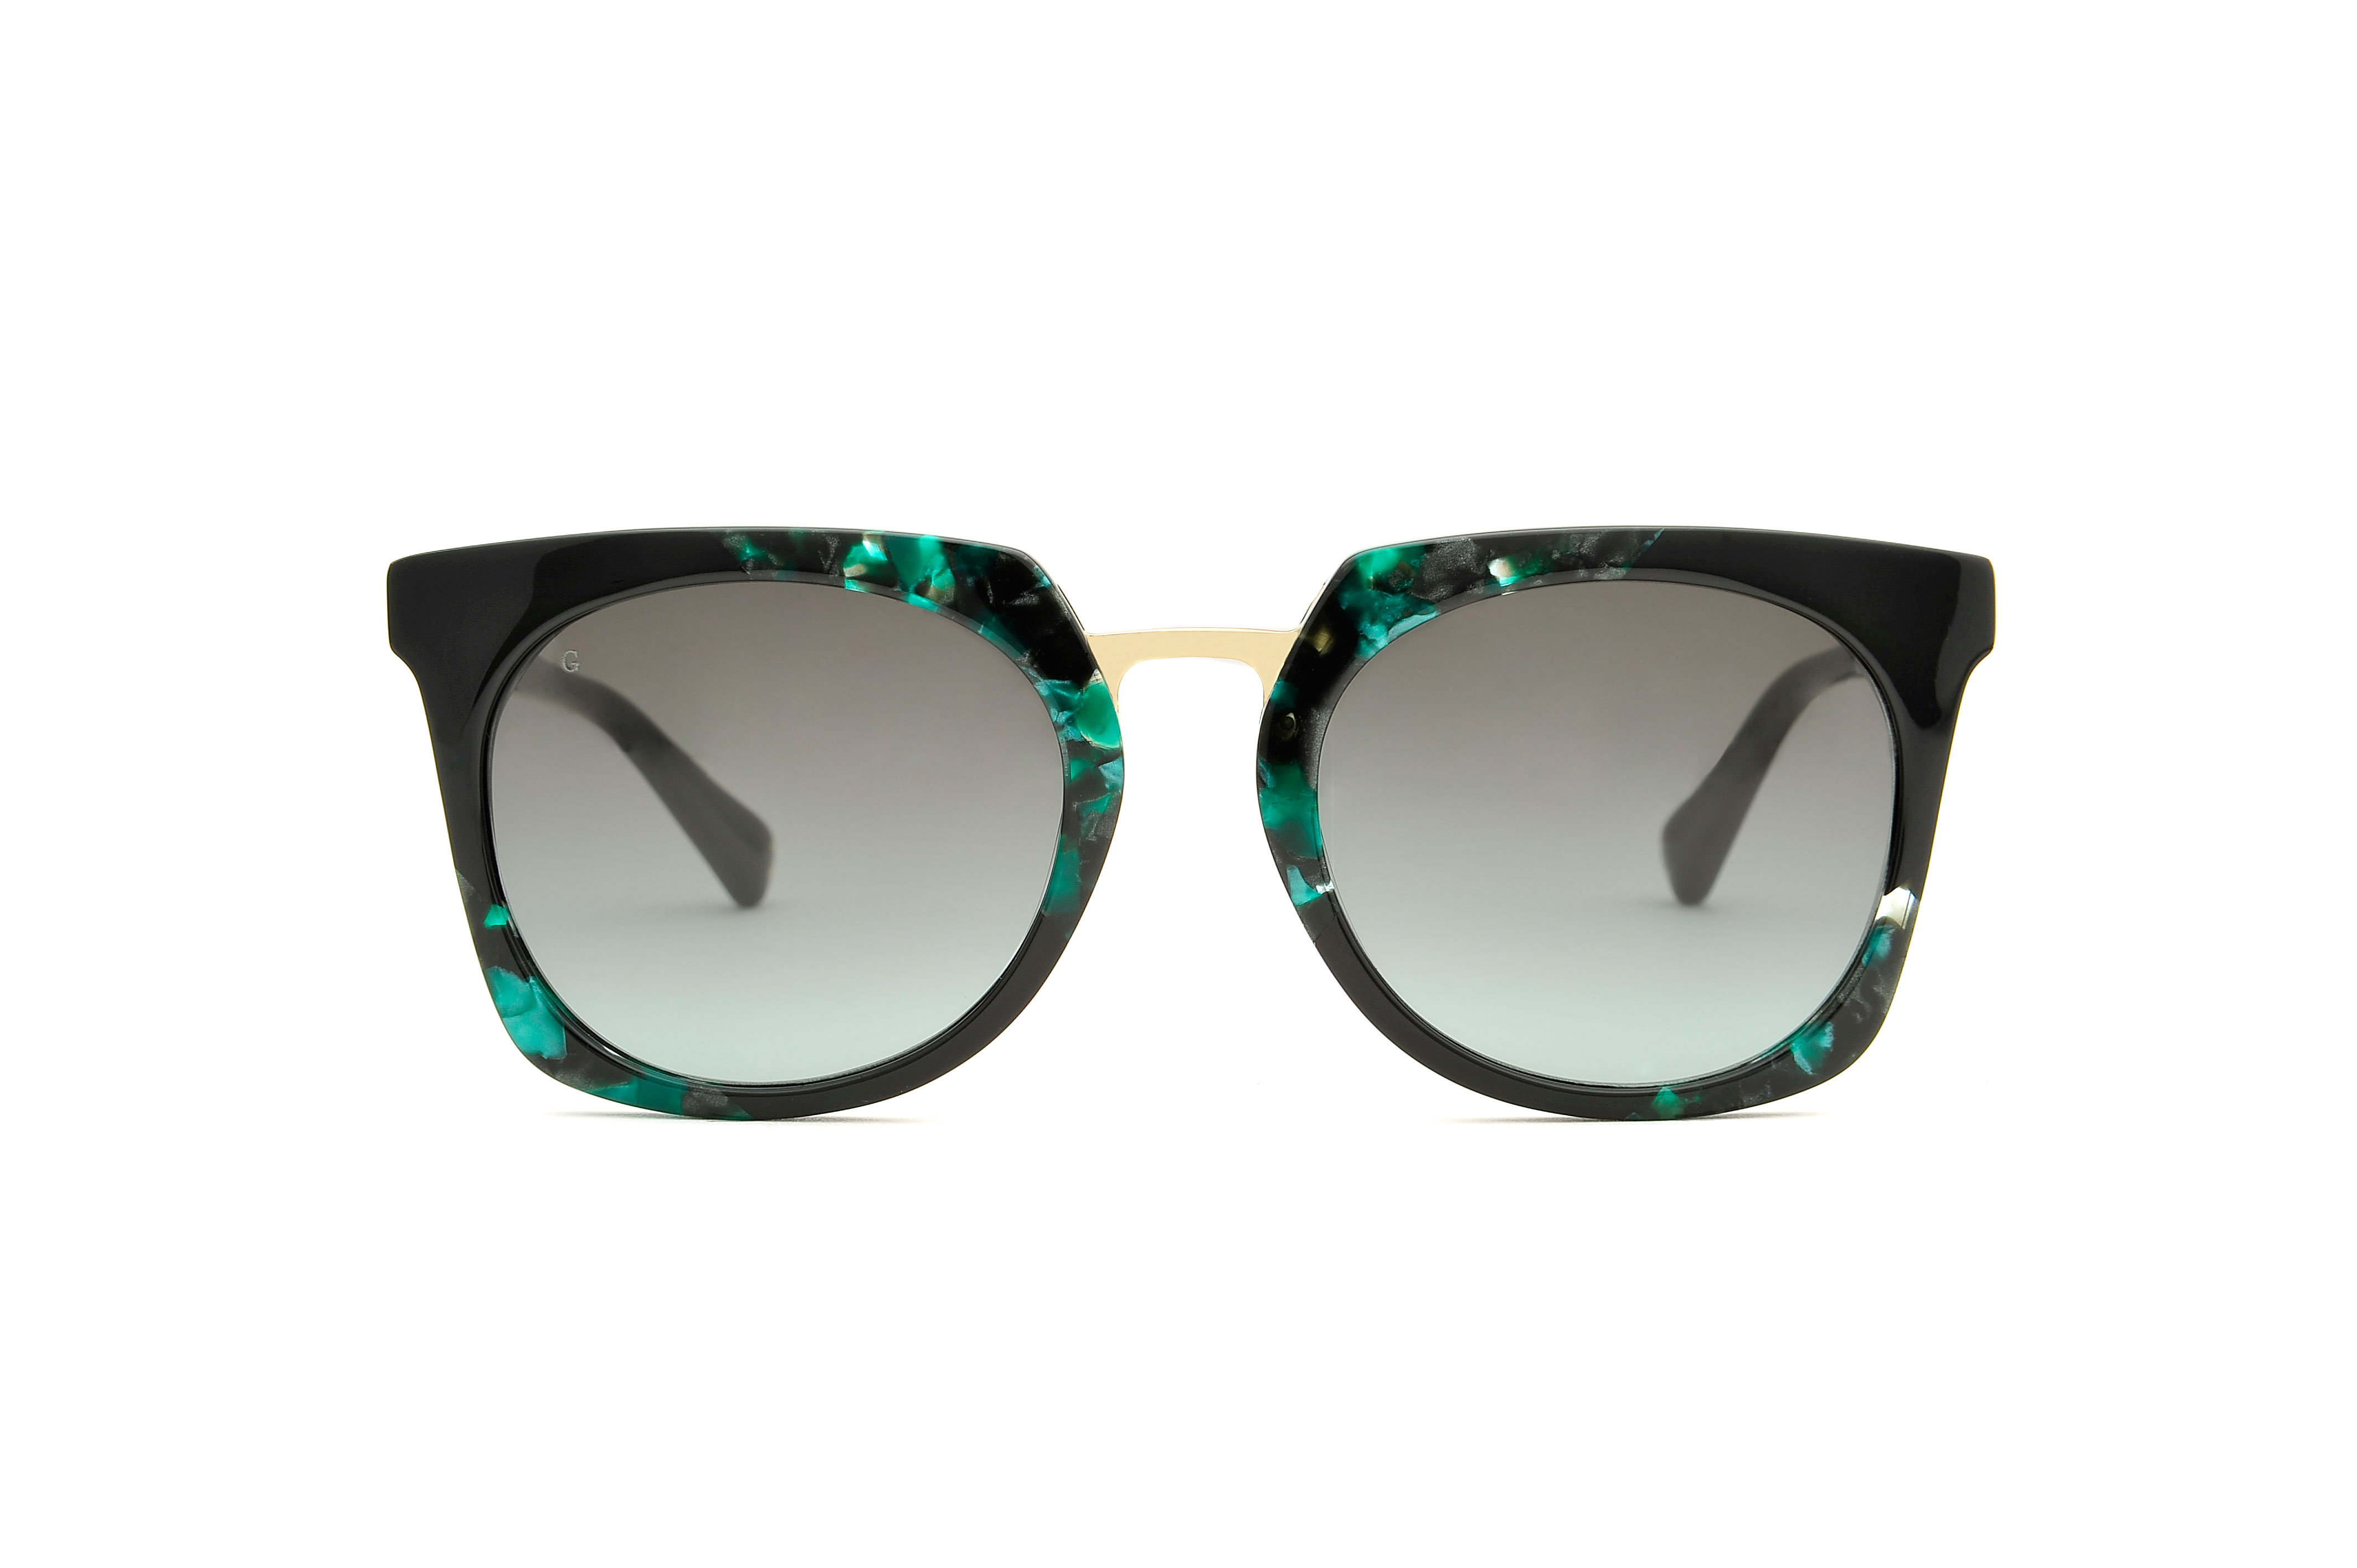 Sunday acetate/metal squared green sunglasses by GIGI Studios